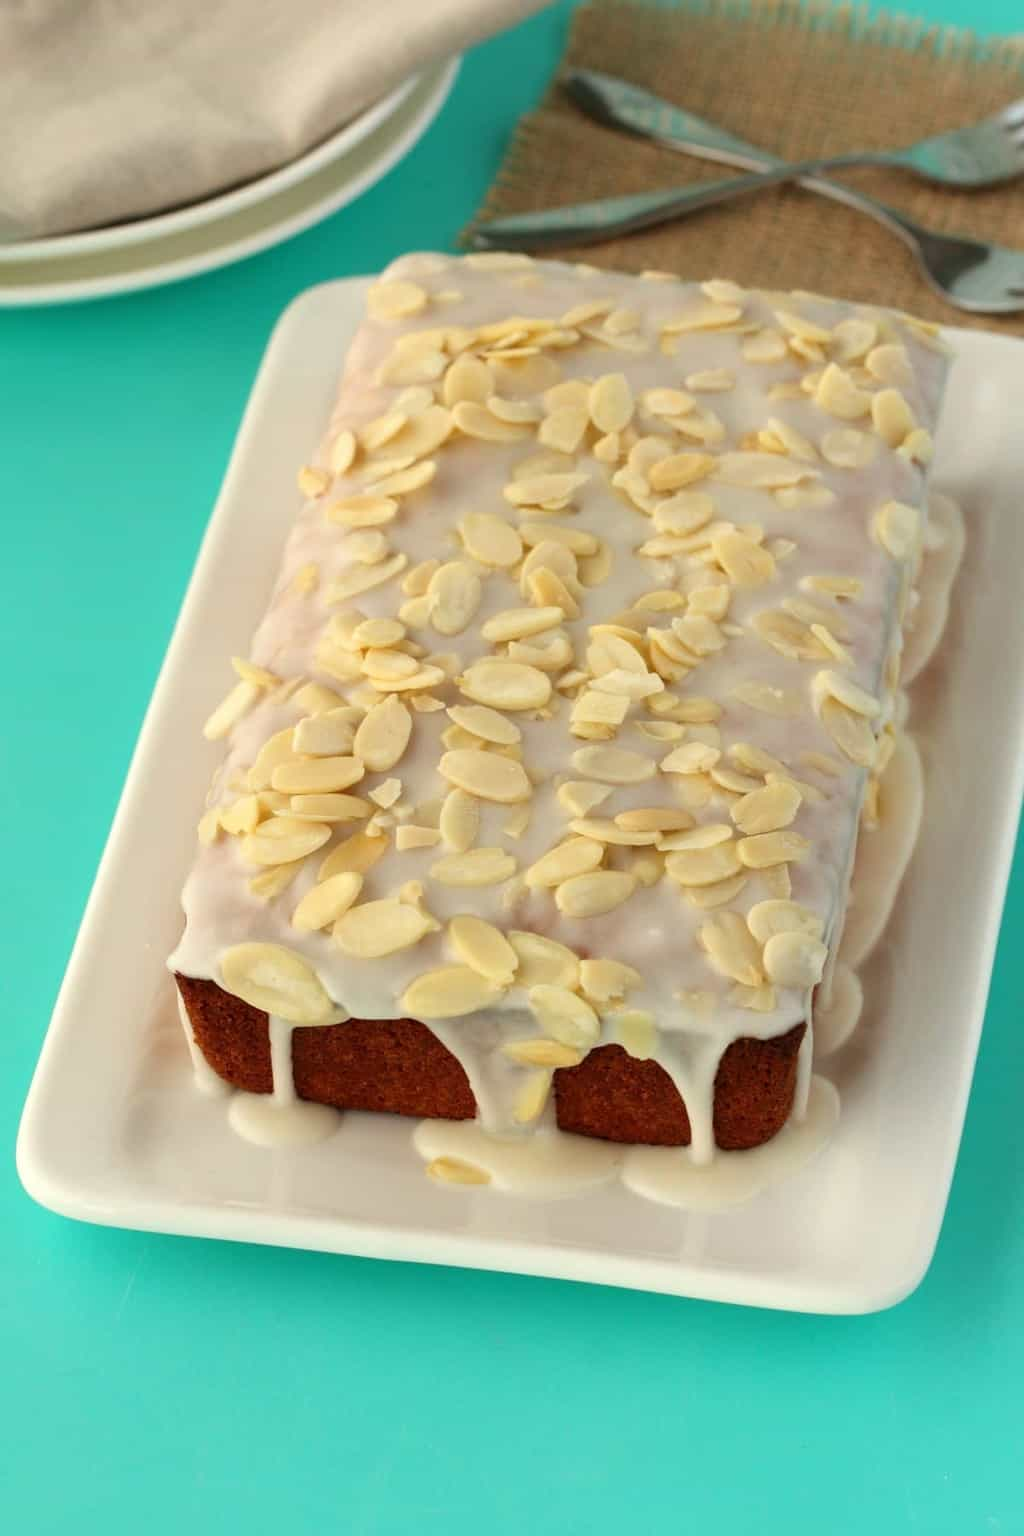 Vegan Pound Cake topped with an almond glaze and almond flakes on a white plate.